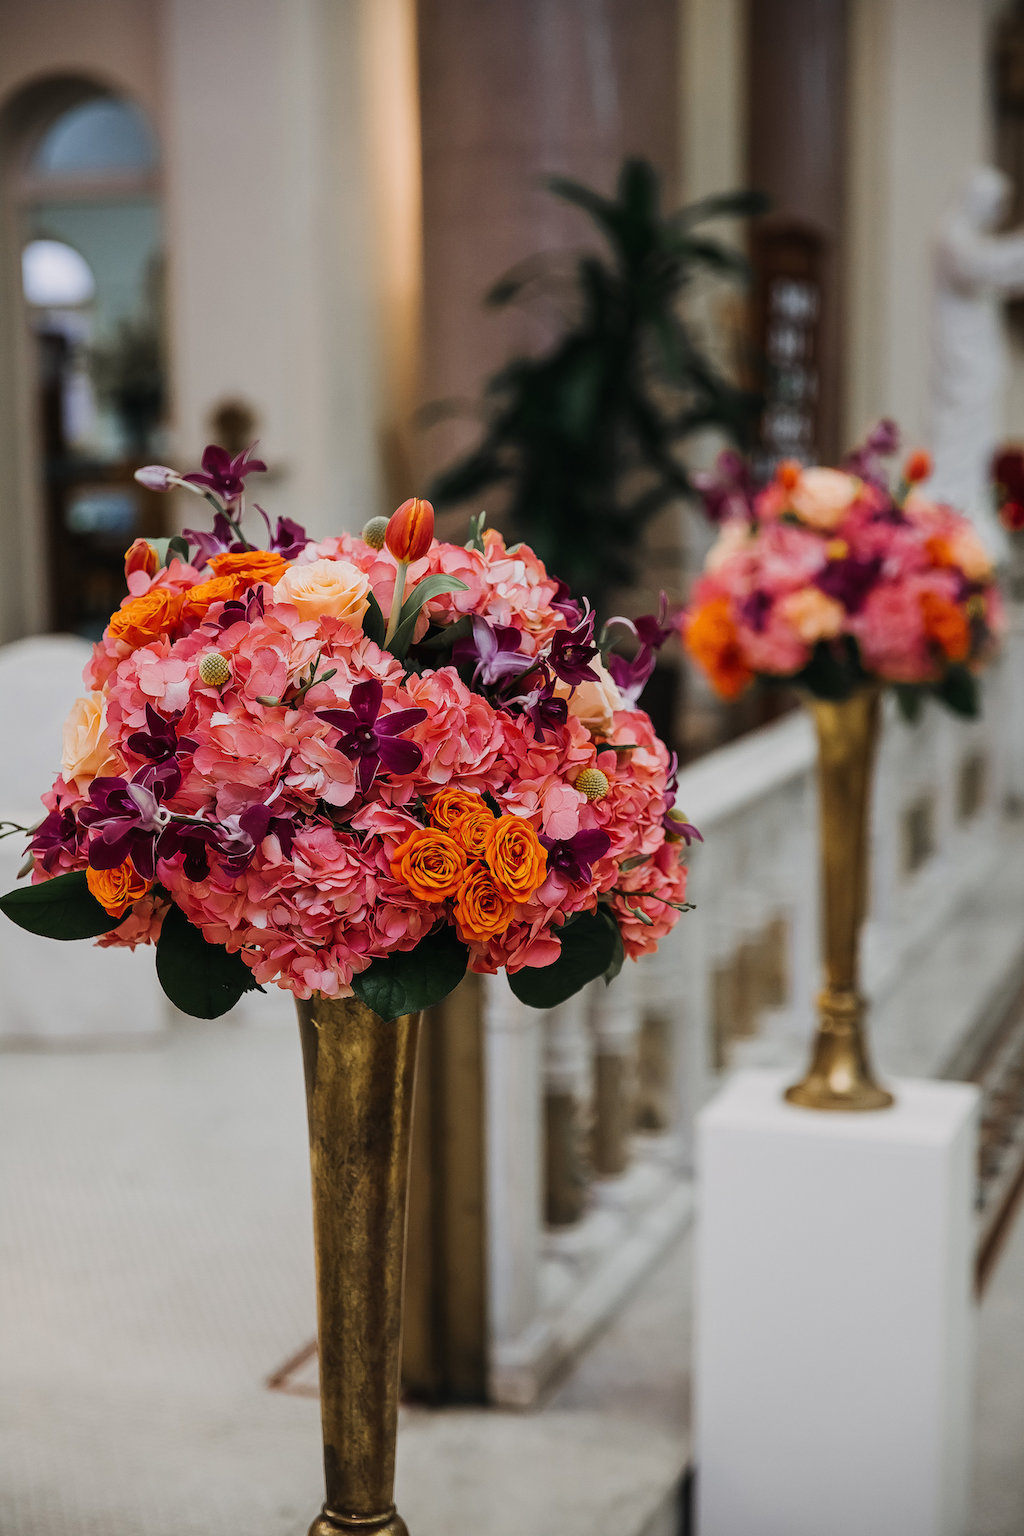 Tall Tropical Wedding Ceremony Flowers with Pink, Orange, and Purple Orchids in Gold Vases